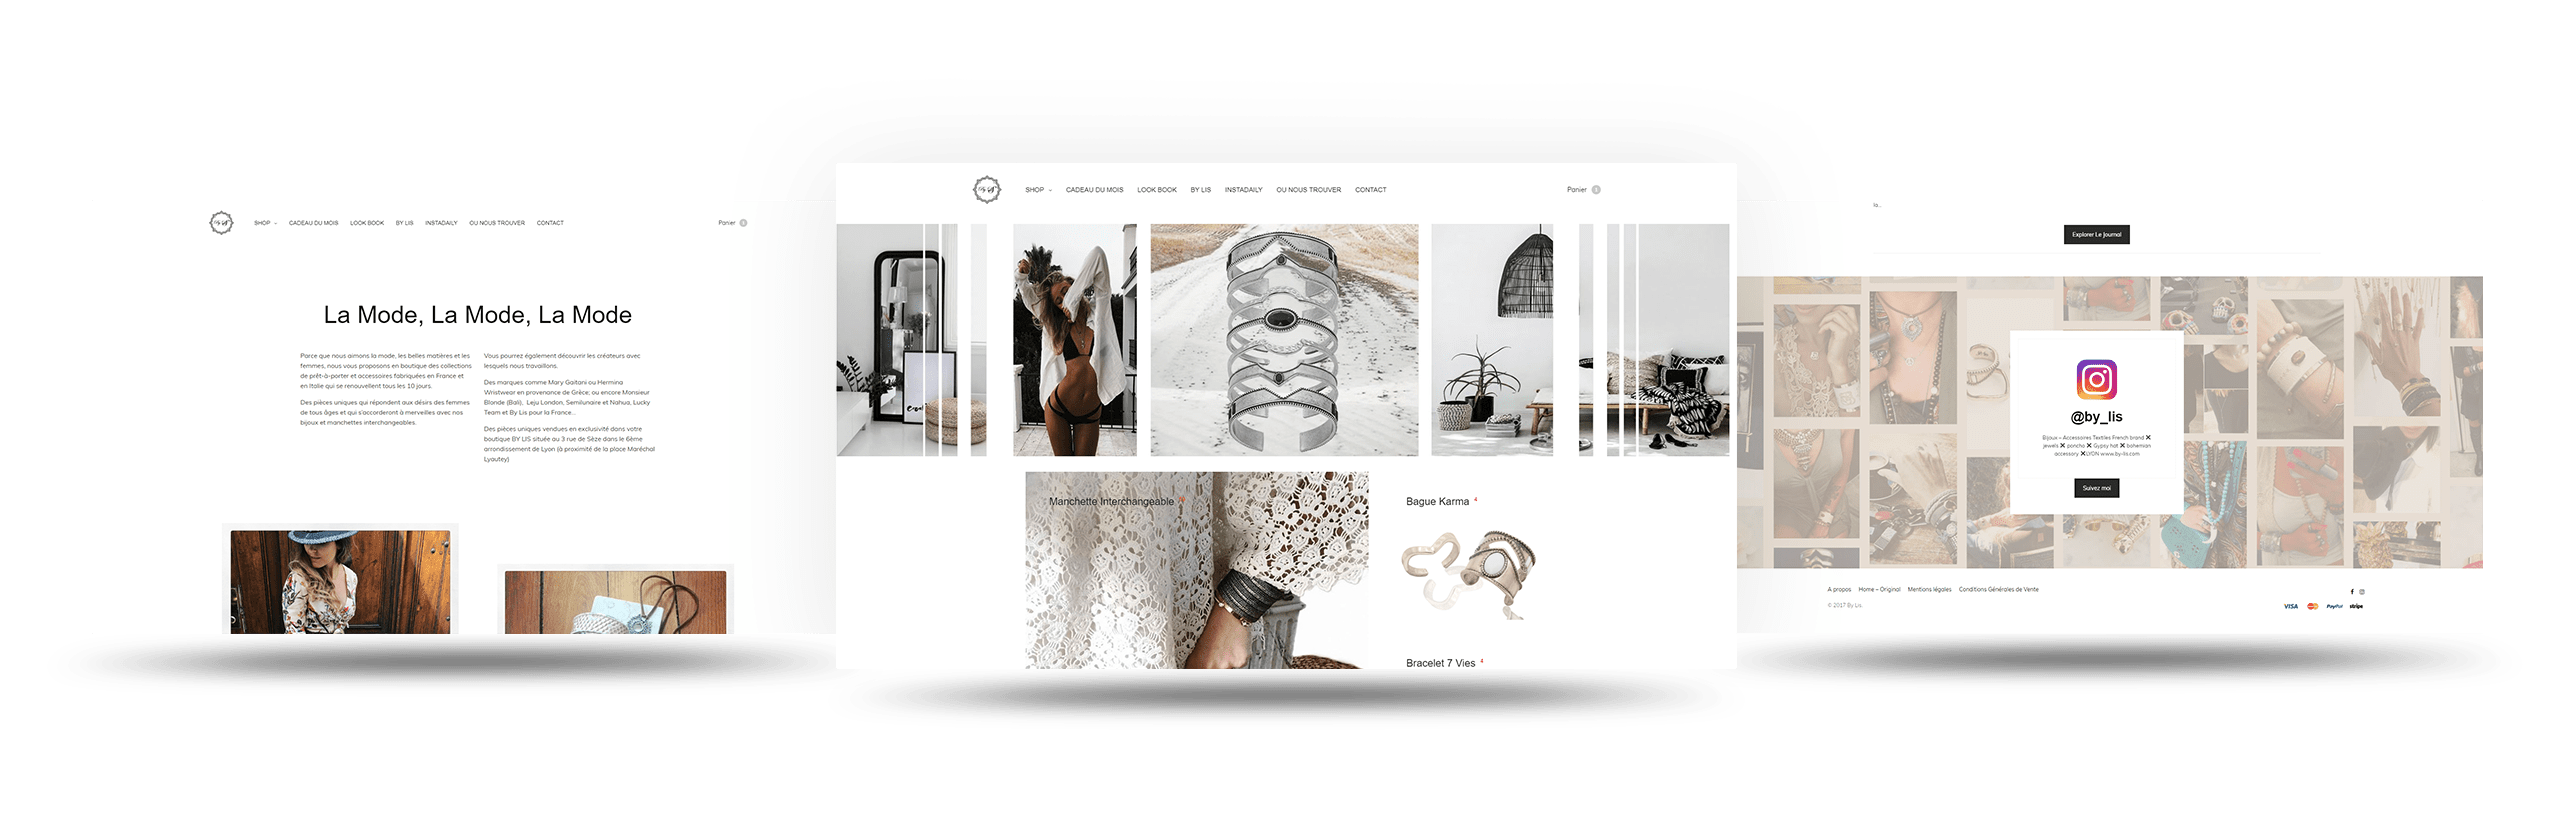 bylis interface wordpress agence web design developpement application mobile